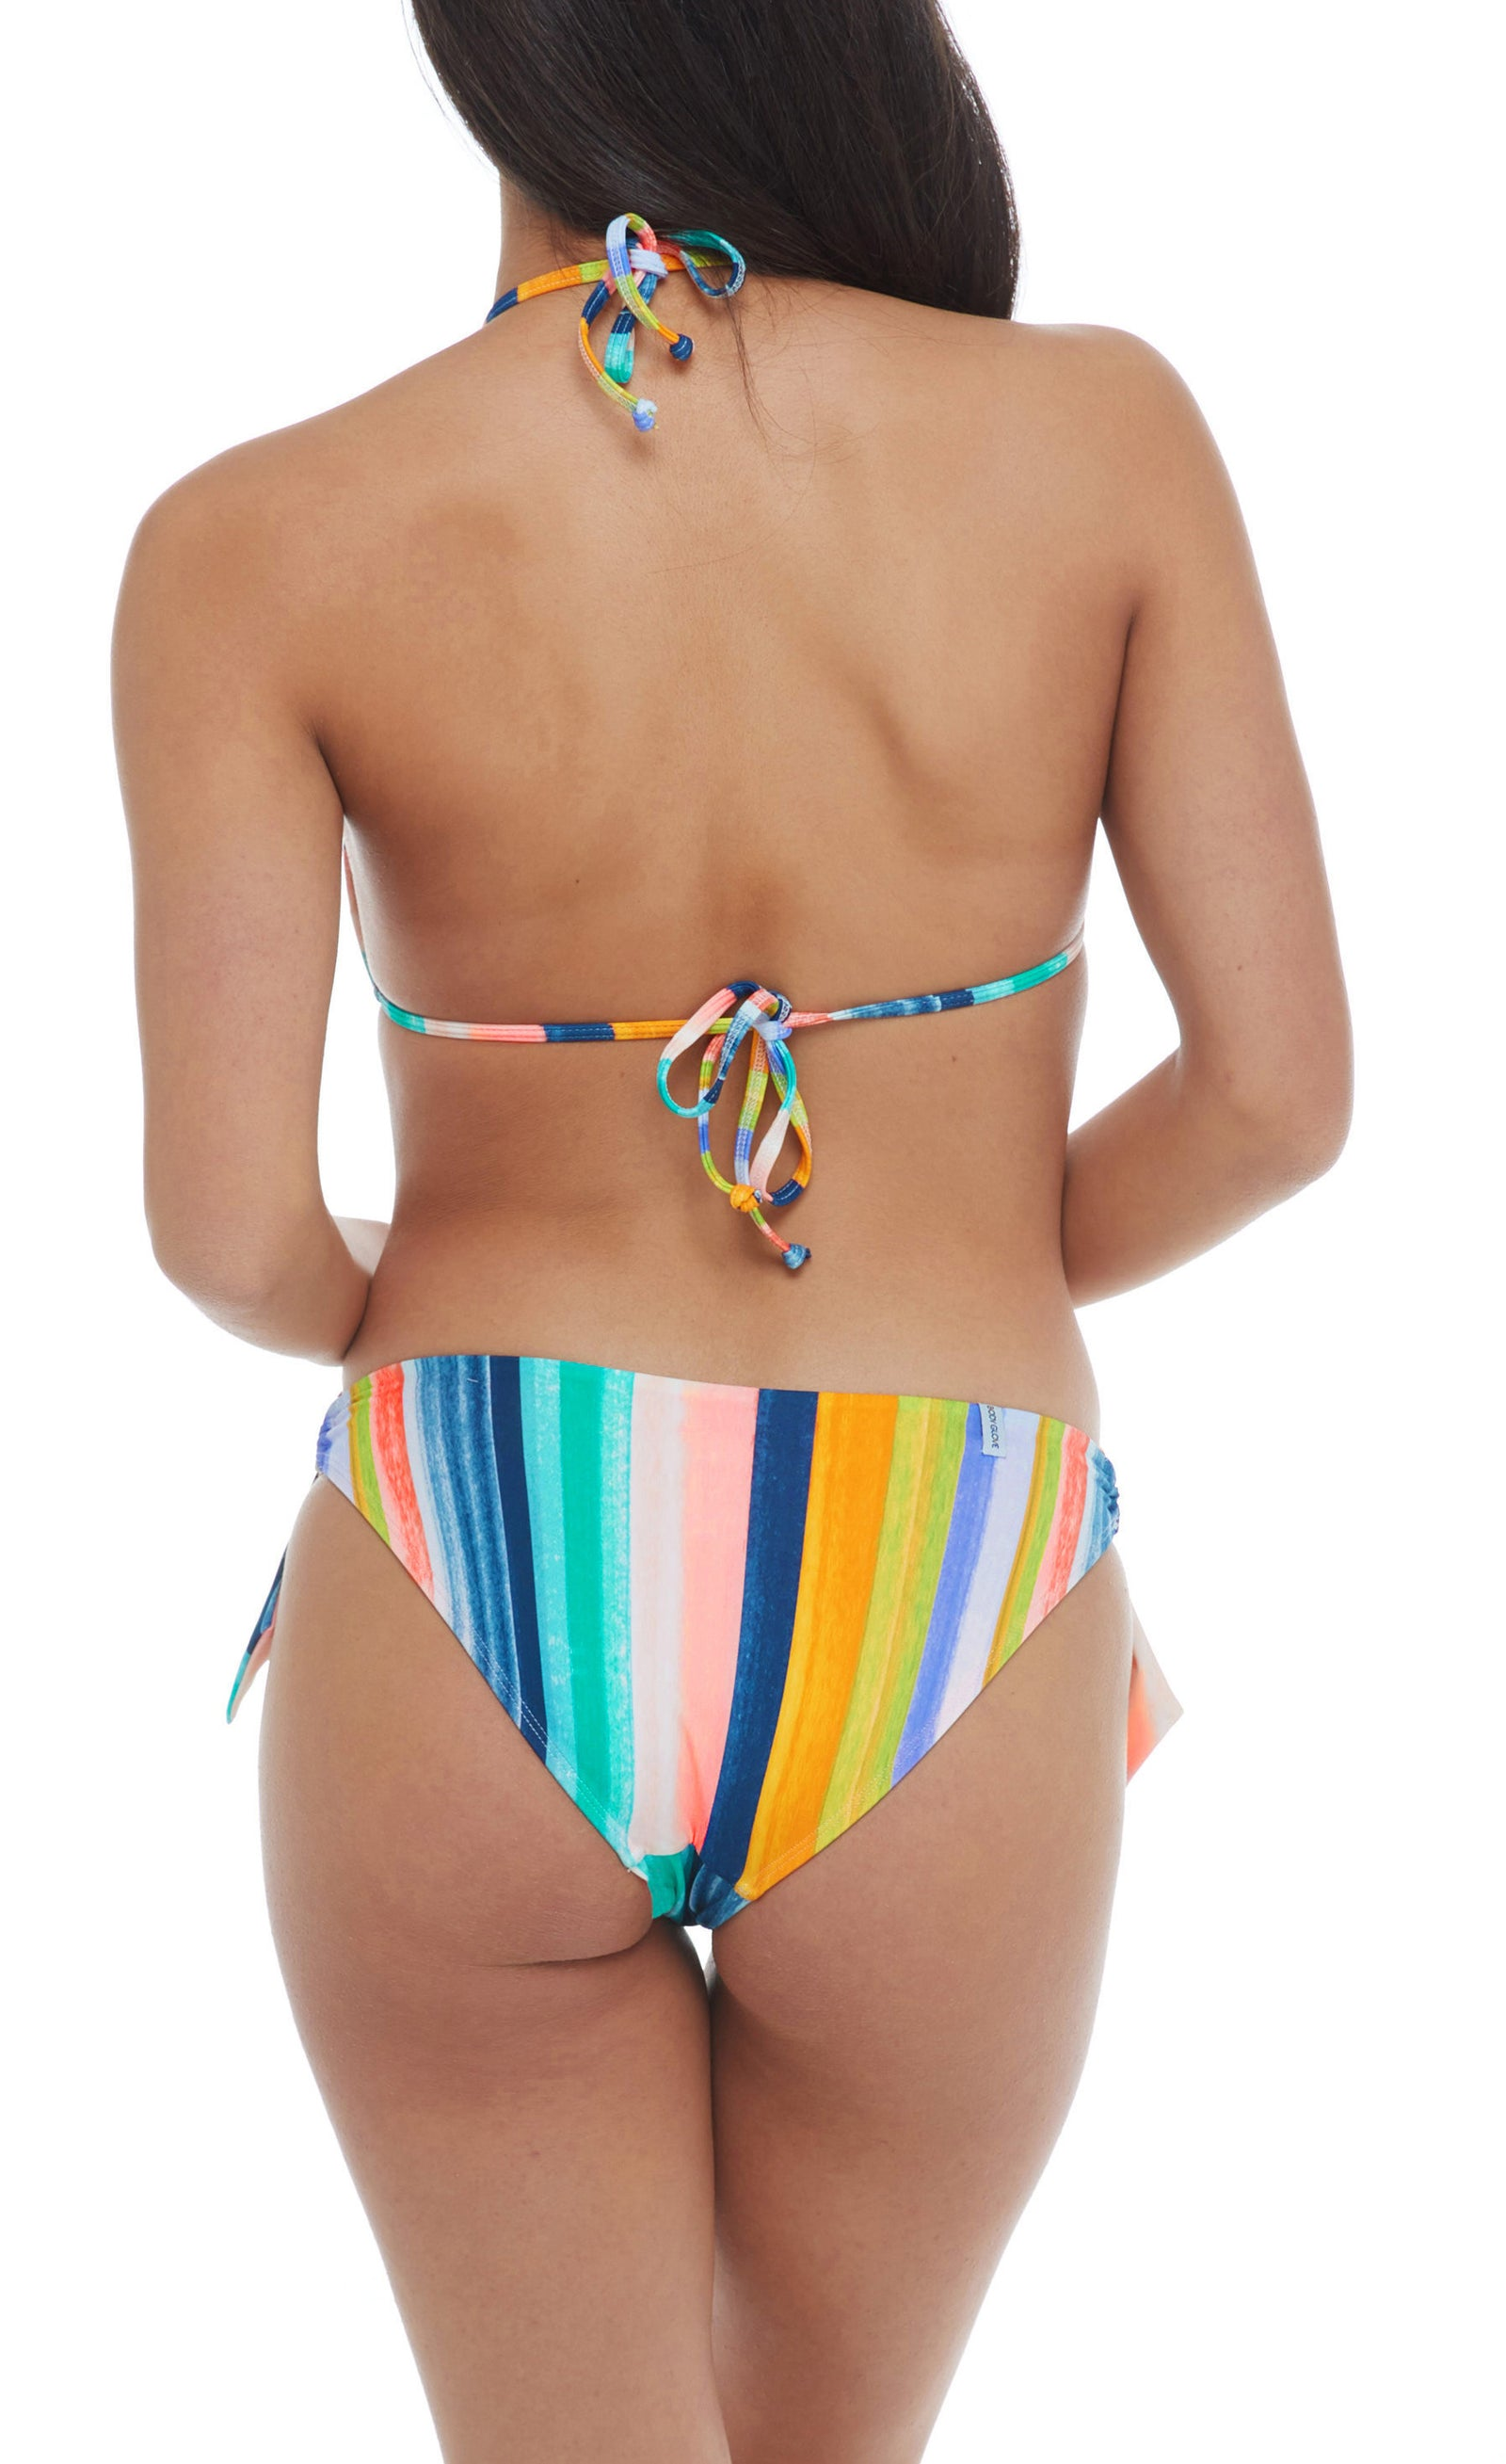 Bikini bottom Faux sash sides with ring detail Full coverage 80% nylon, 20% Spandex Product Number: 39-536135